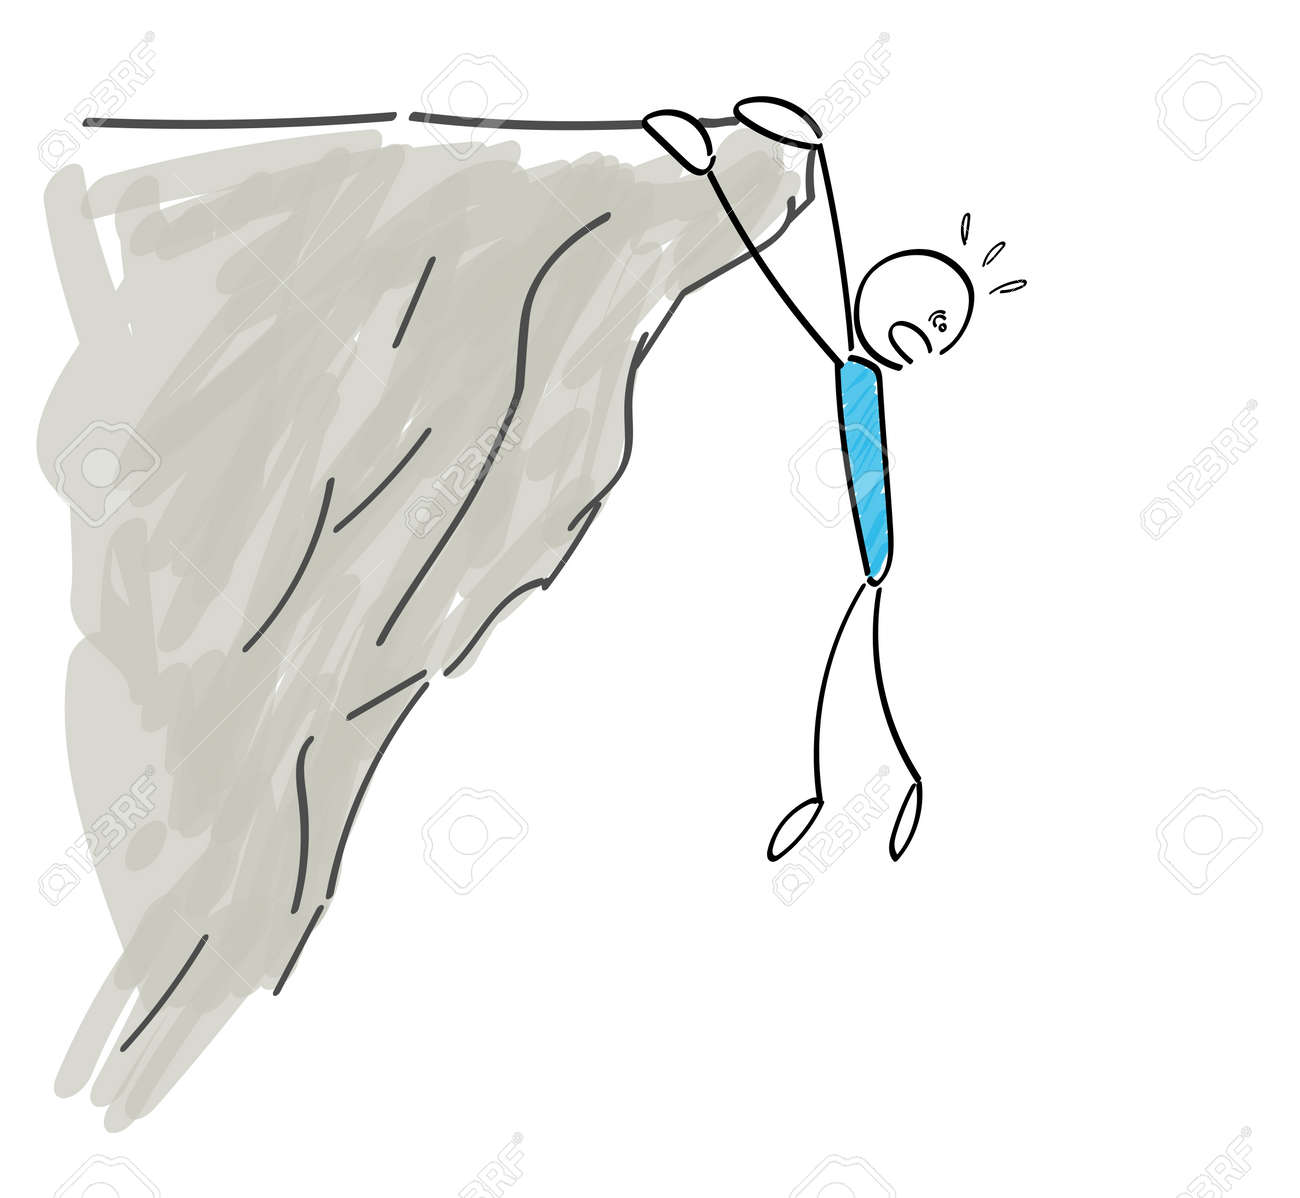 Stickman hanging on a cliff - 168807248